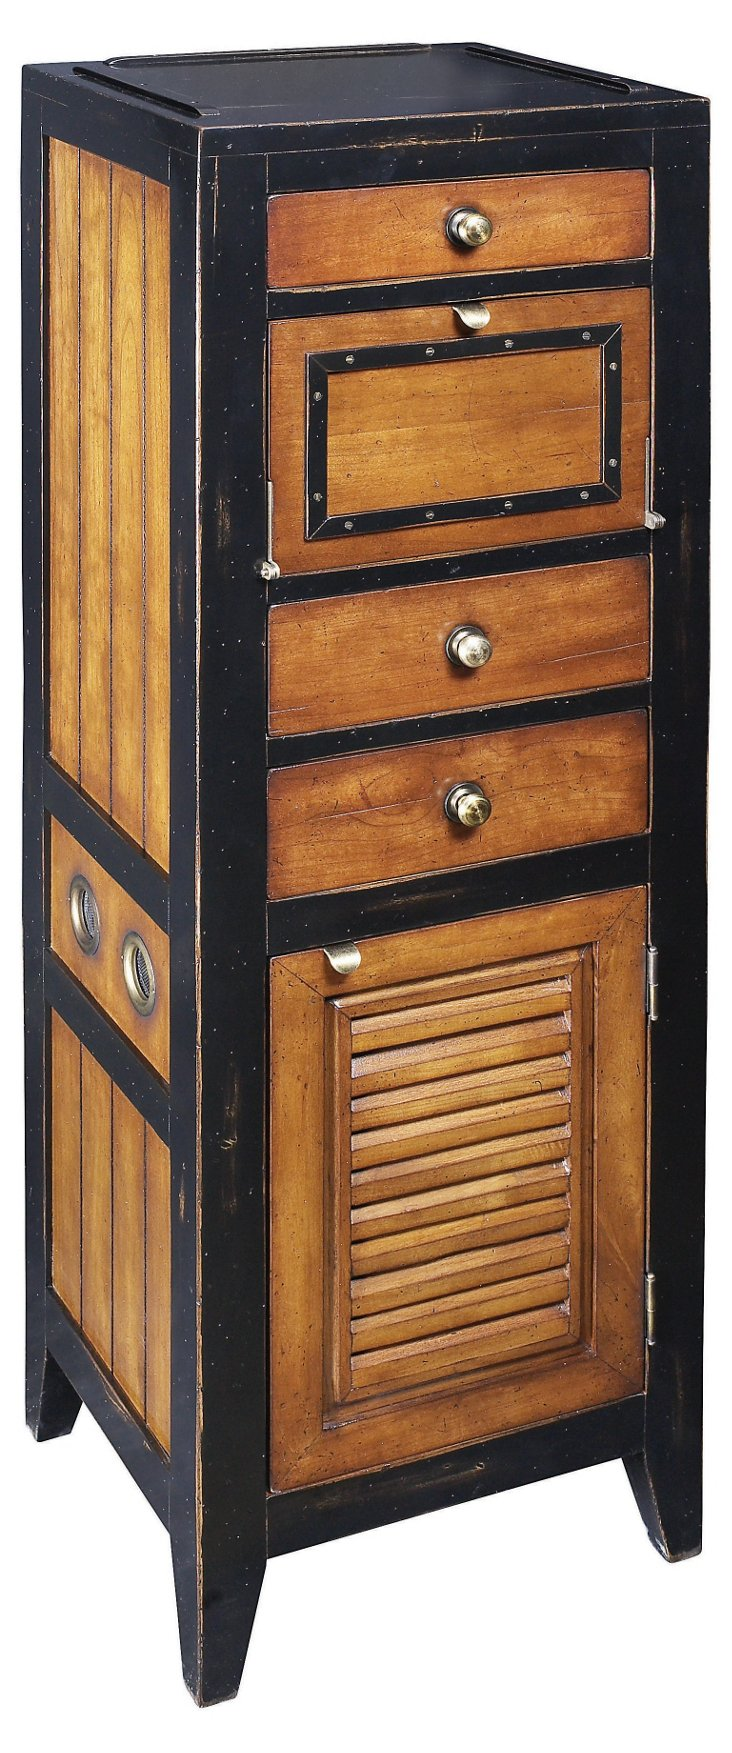 "47"" Cape Cod Locker, Black"